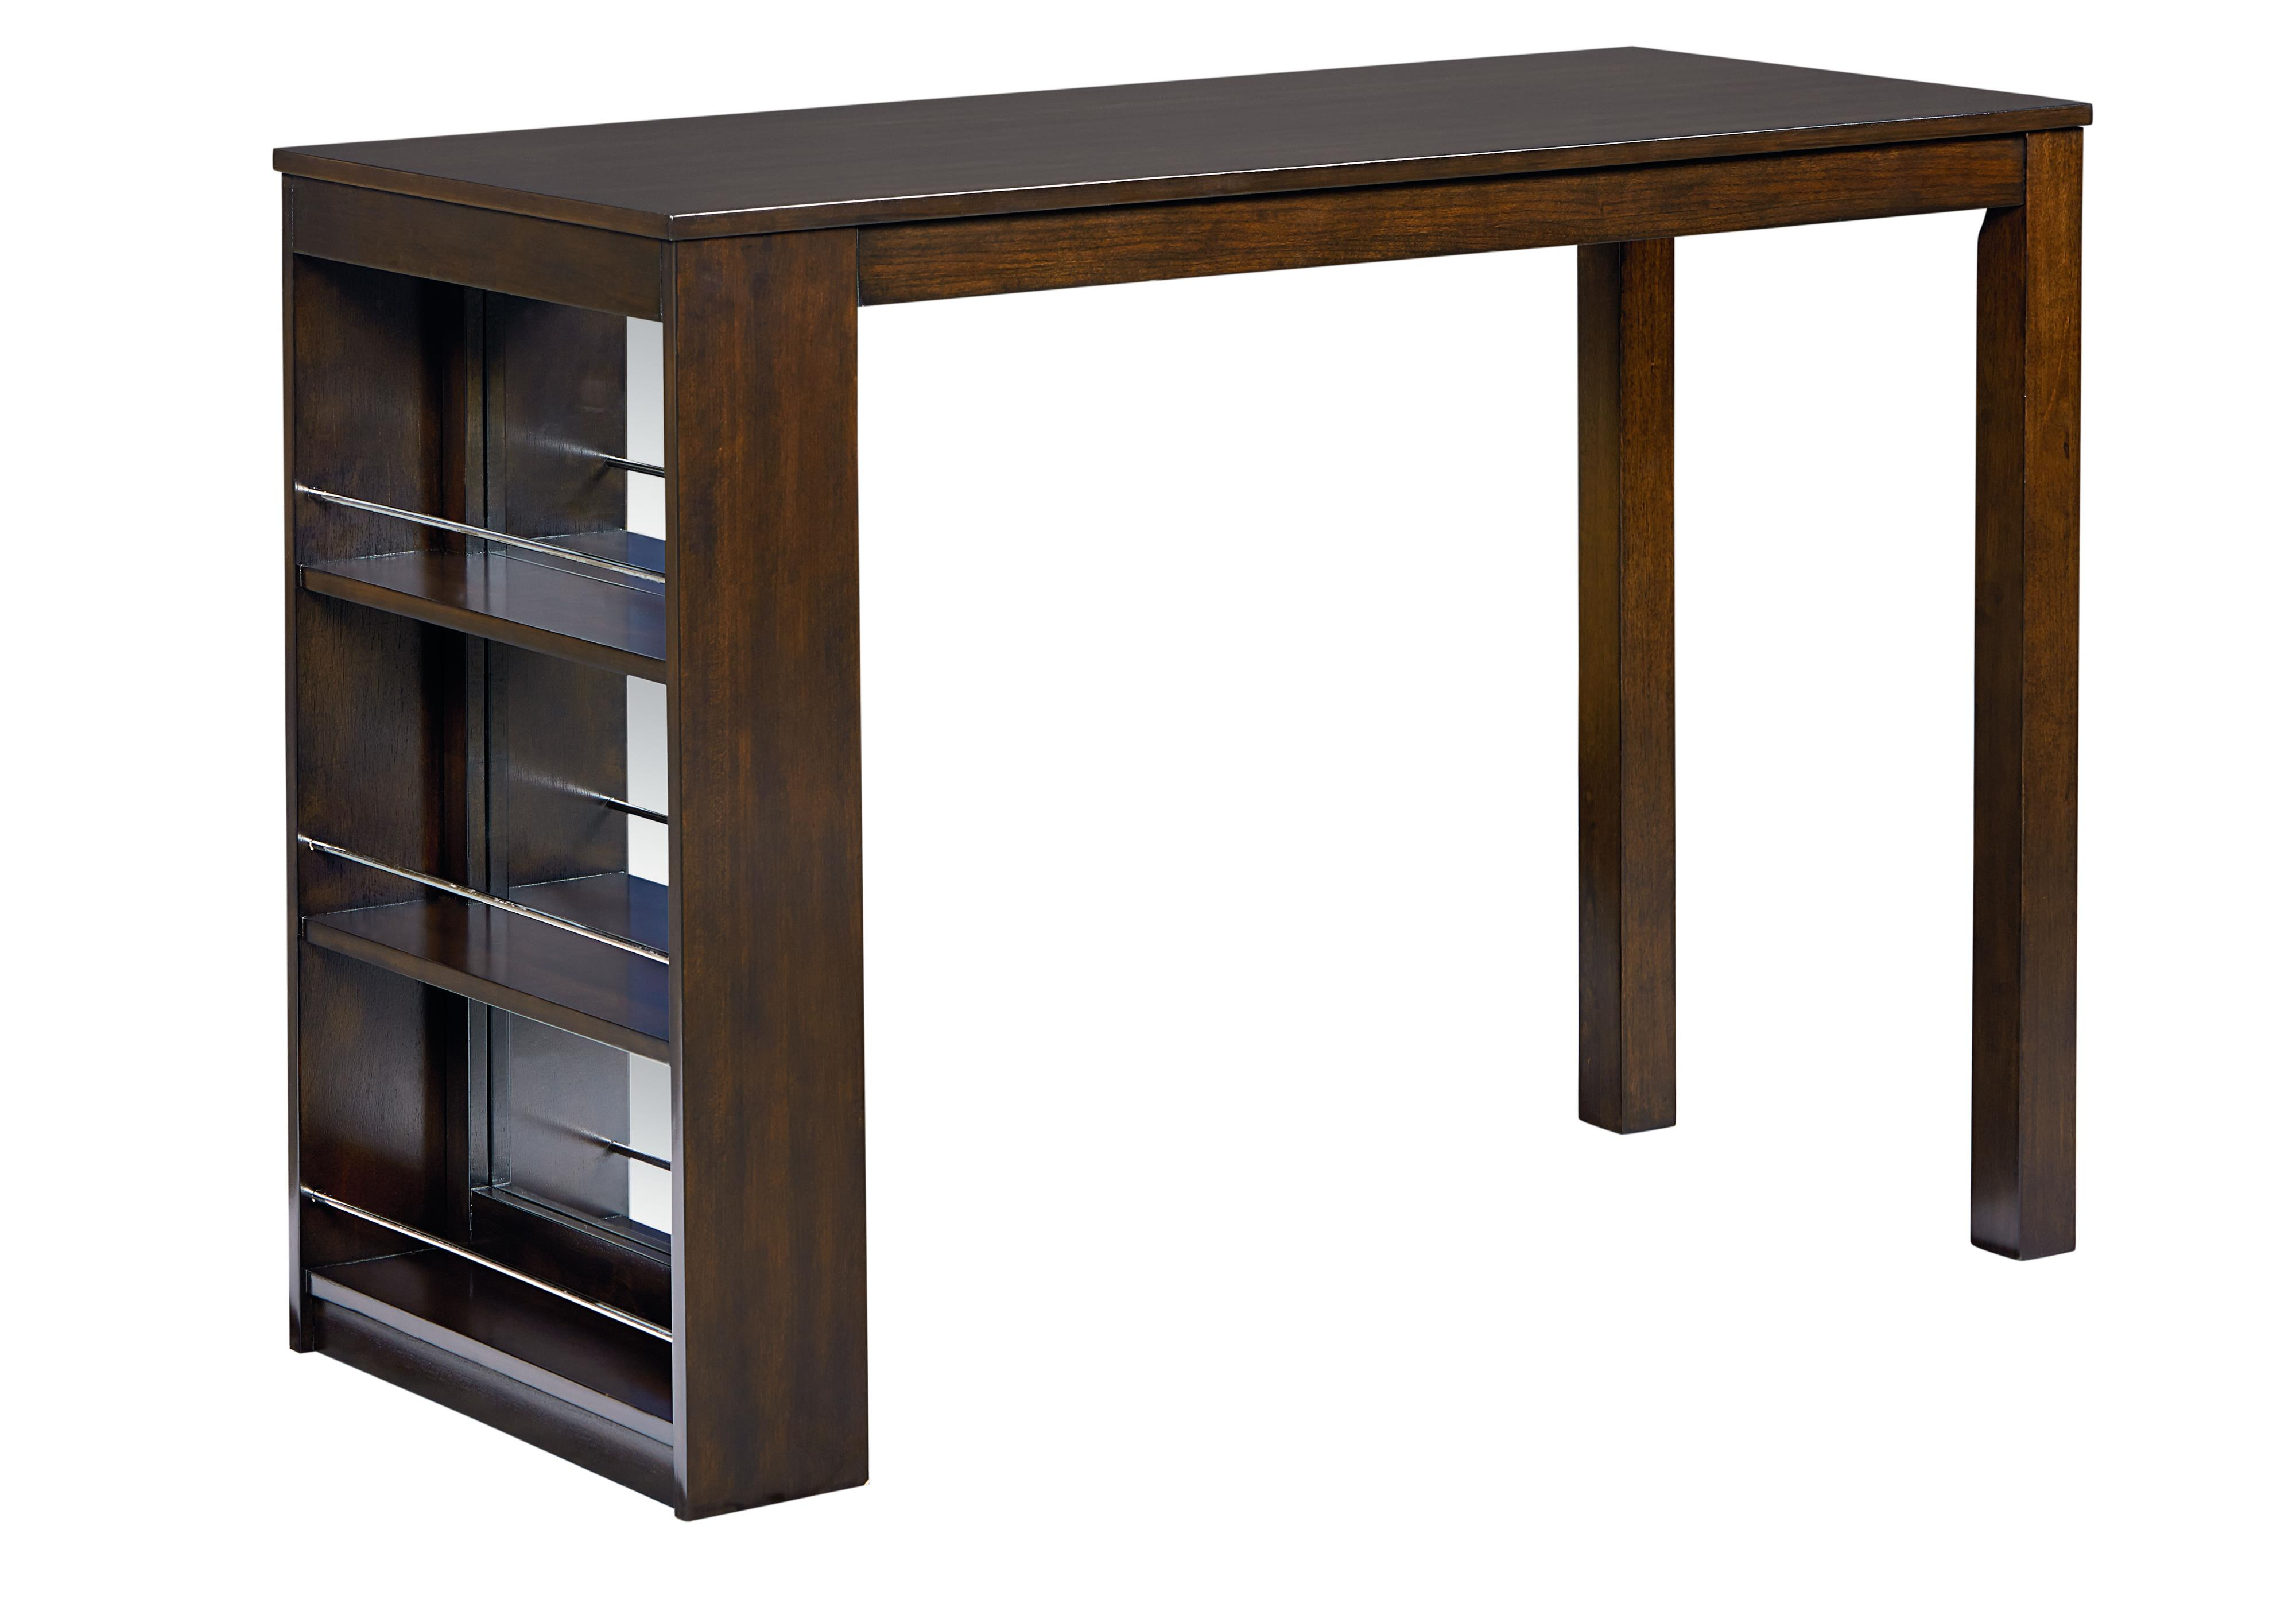 Standard Furniture PORTER Counter-Height Table               - Item Number: 15156